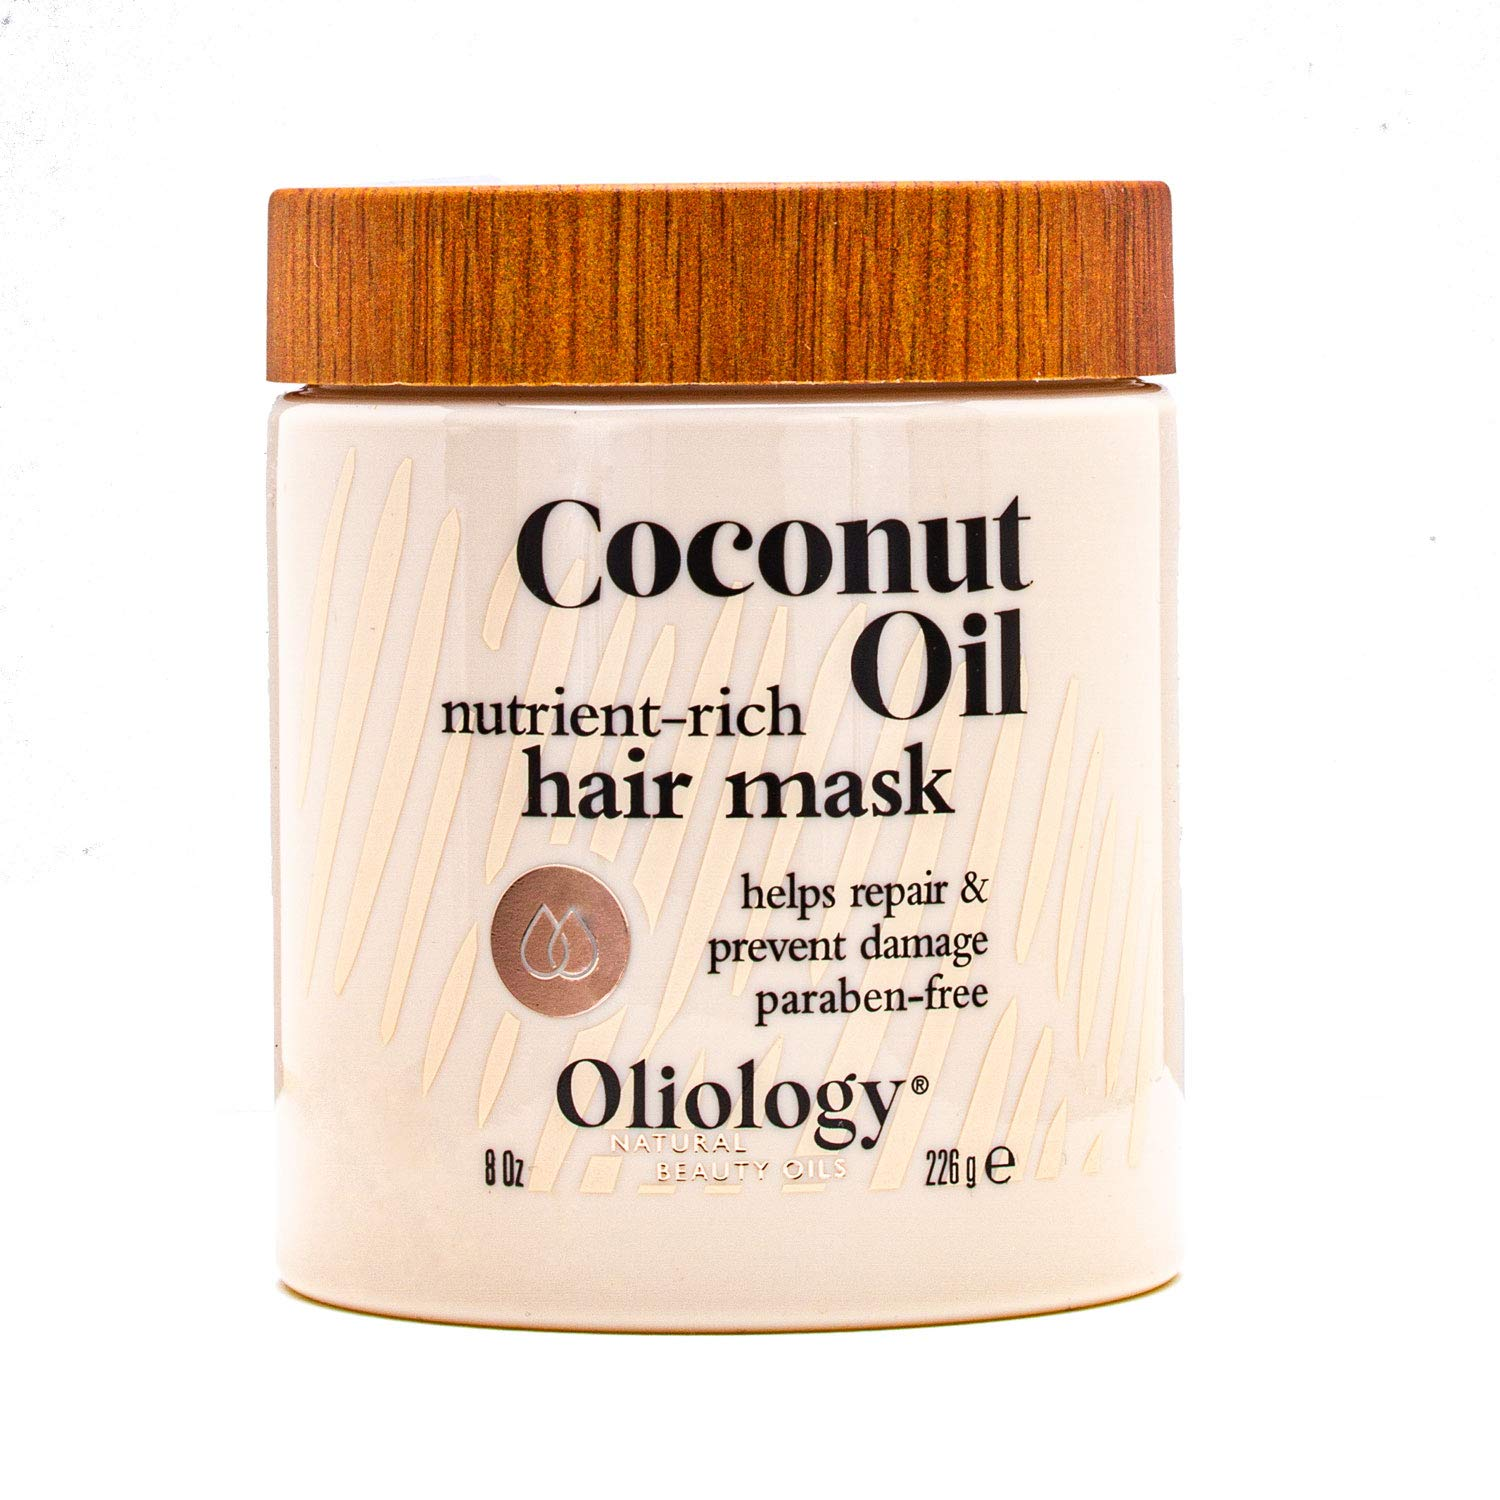 Oliology Coconut Oil Hair quality assurance Mask Max 60% OFF Restore Damaged Helps Repair -